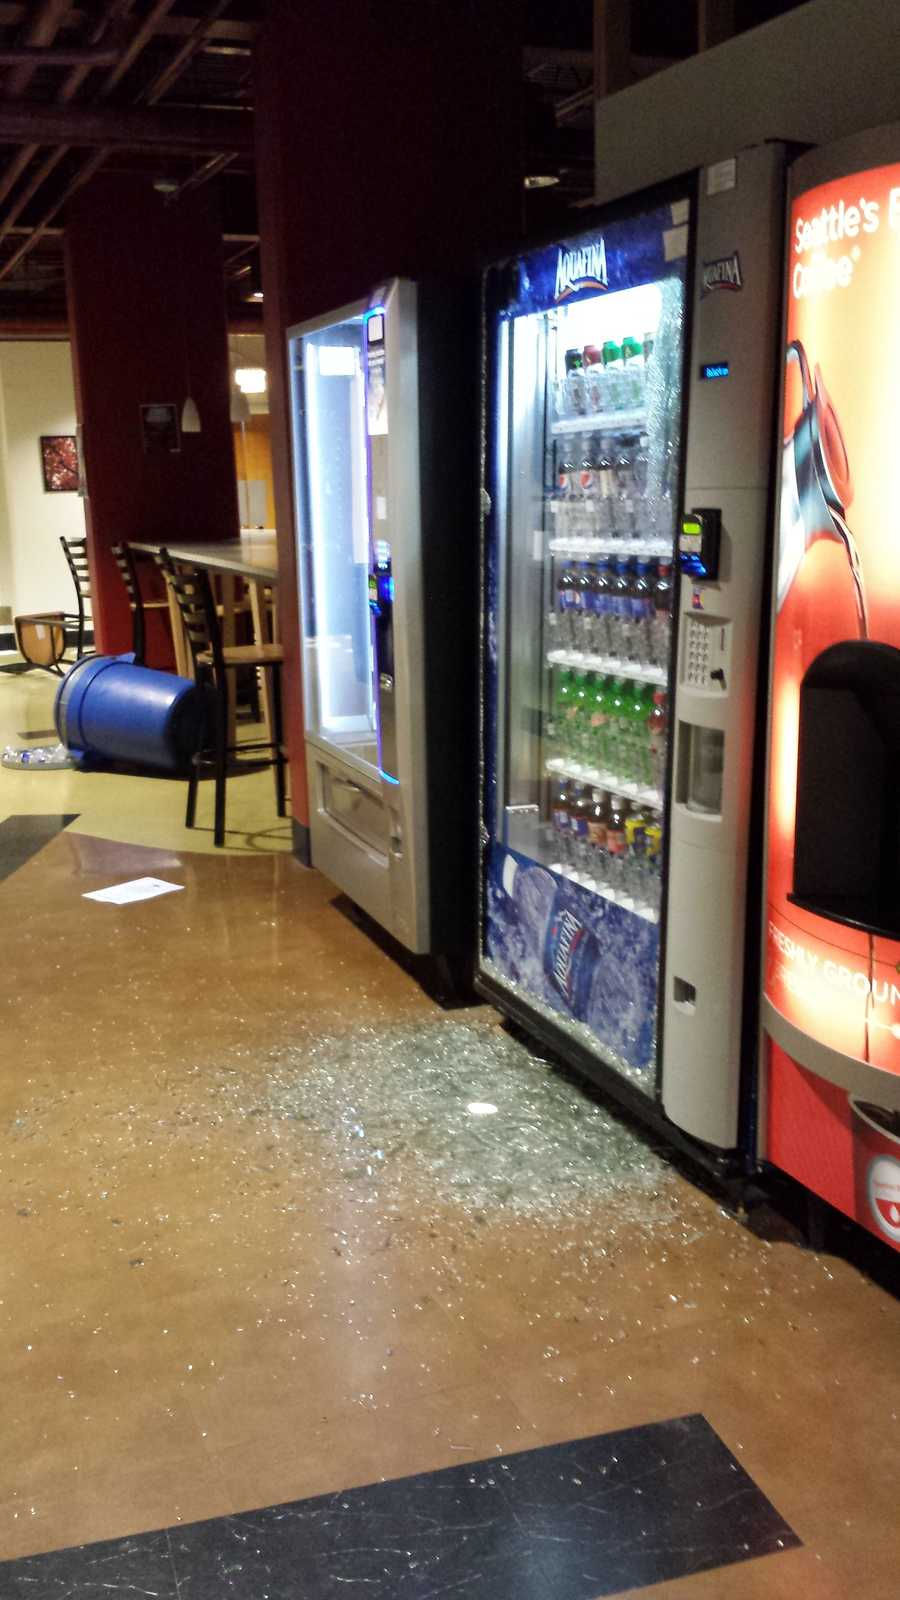 The vandalism inside of the building included smashed vending machine glass and overturned furniture and trash cans.